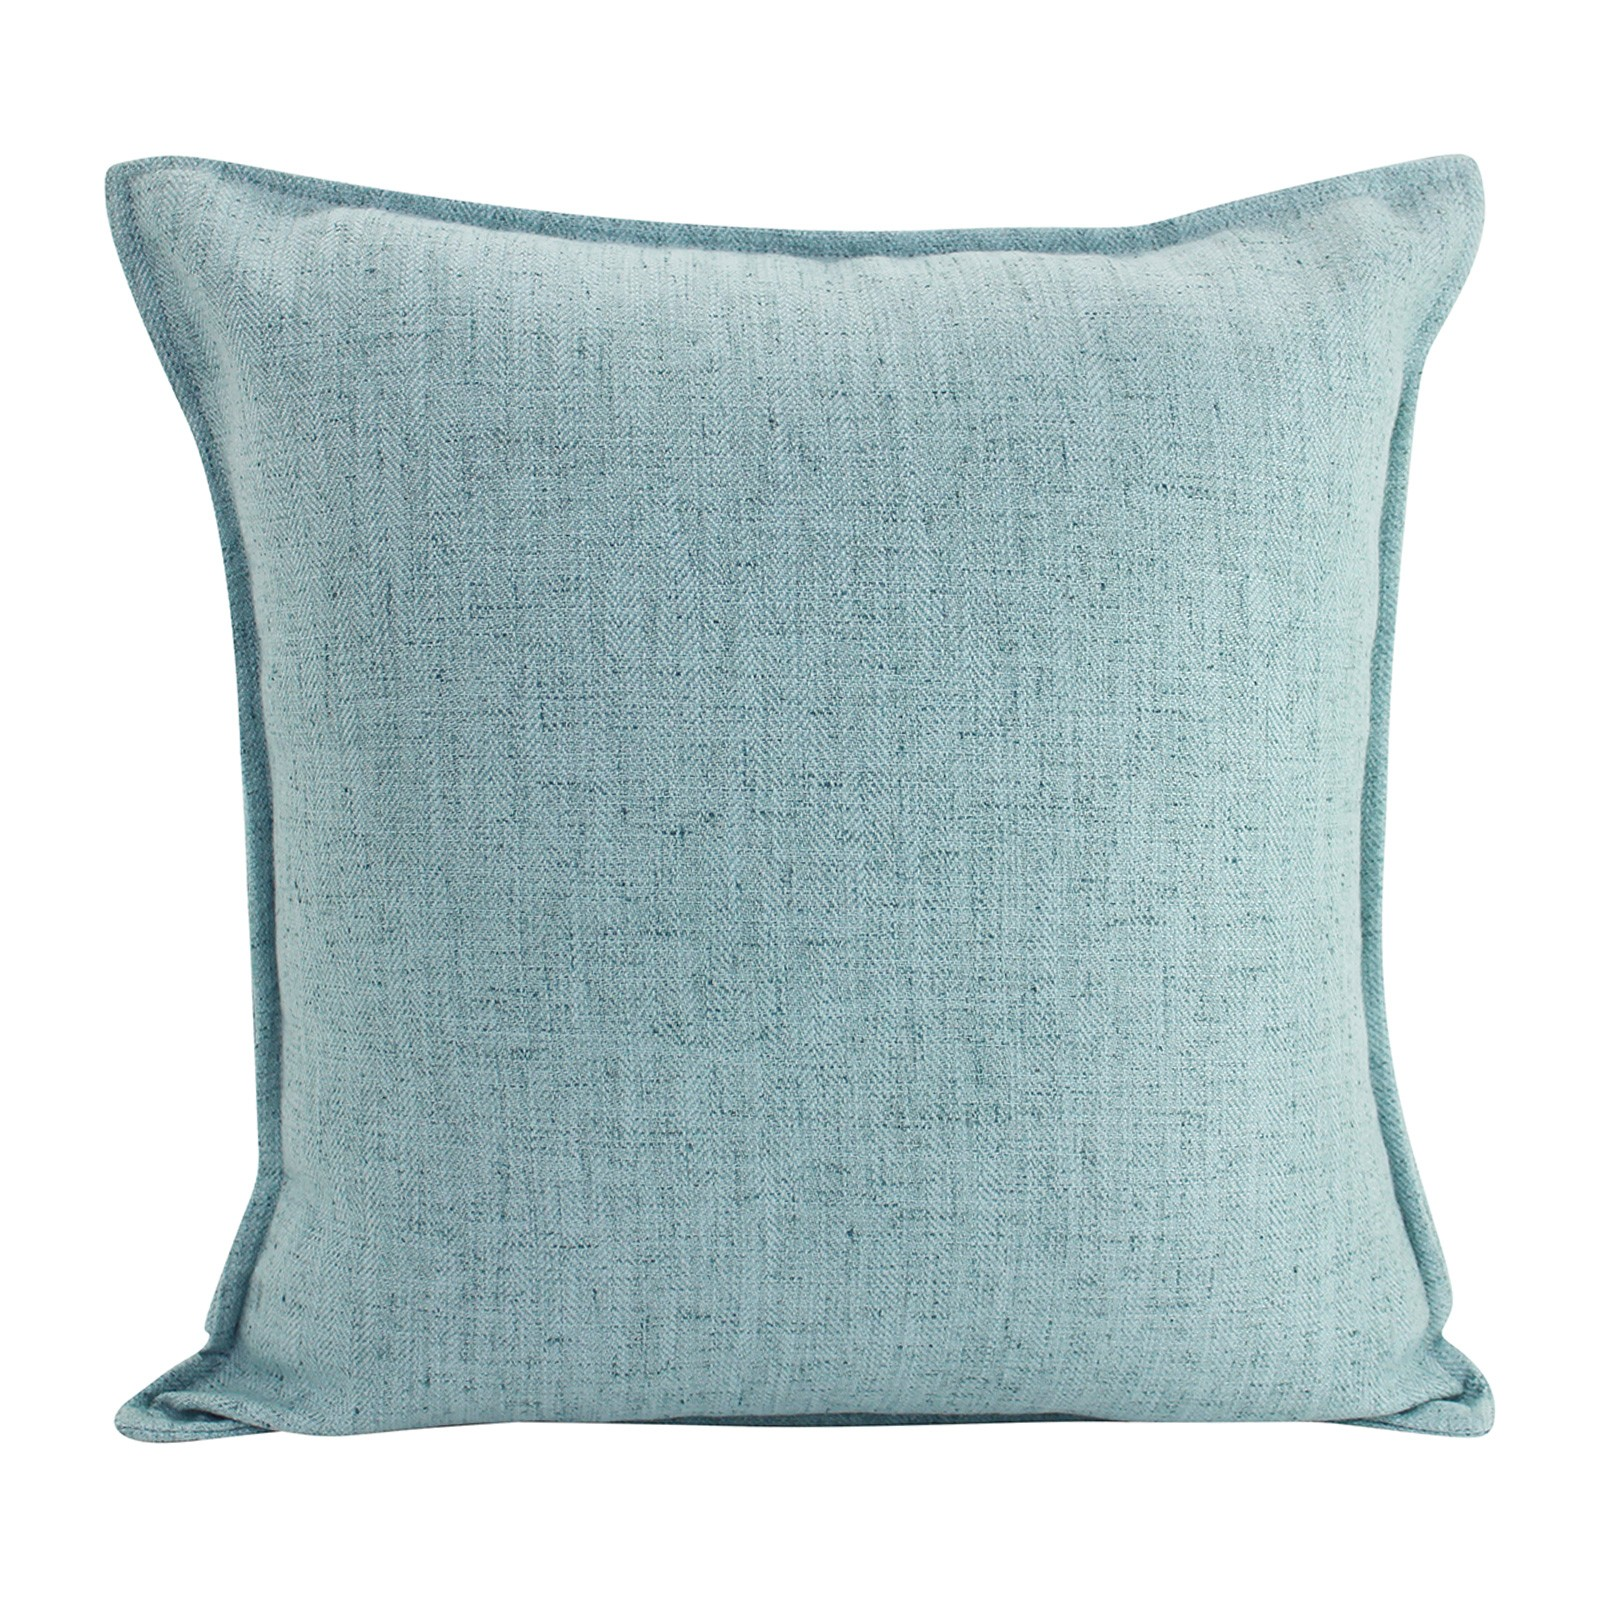 Farra Linen Euro Cushion, Light Blue